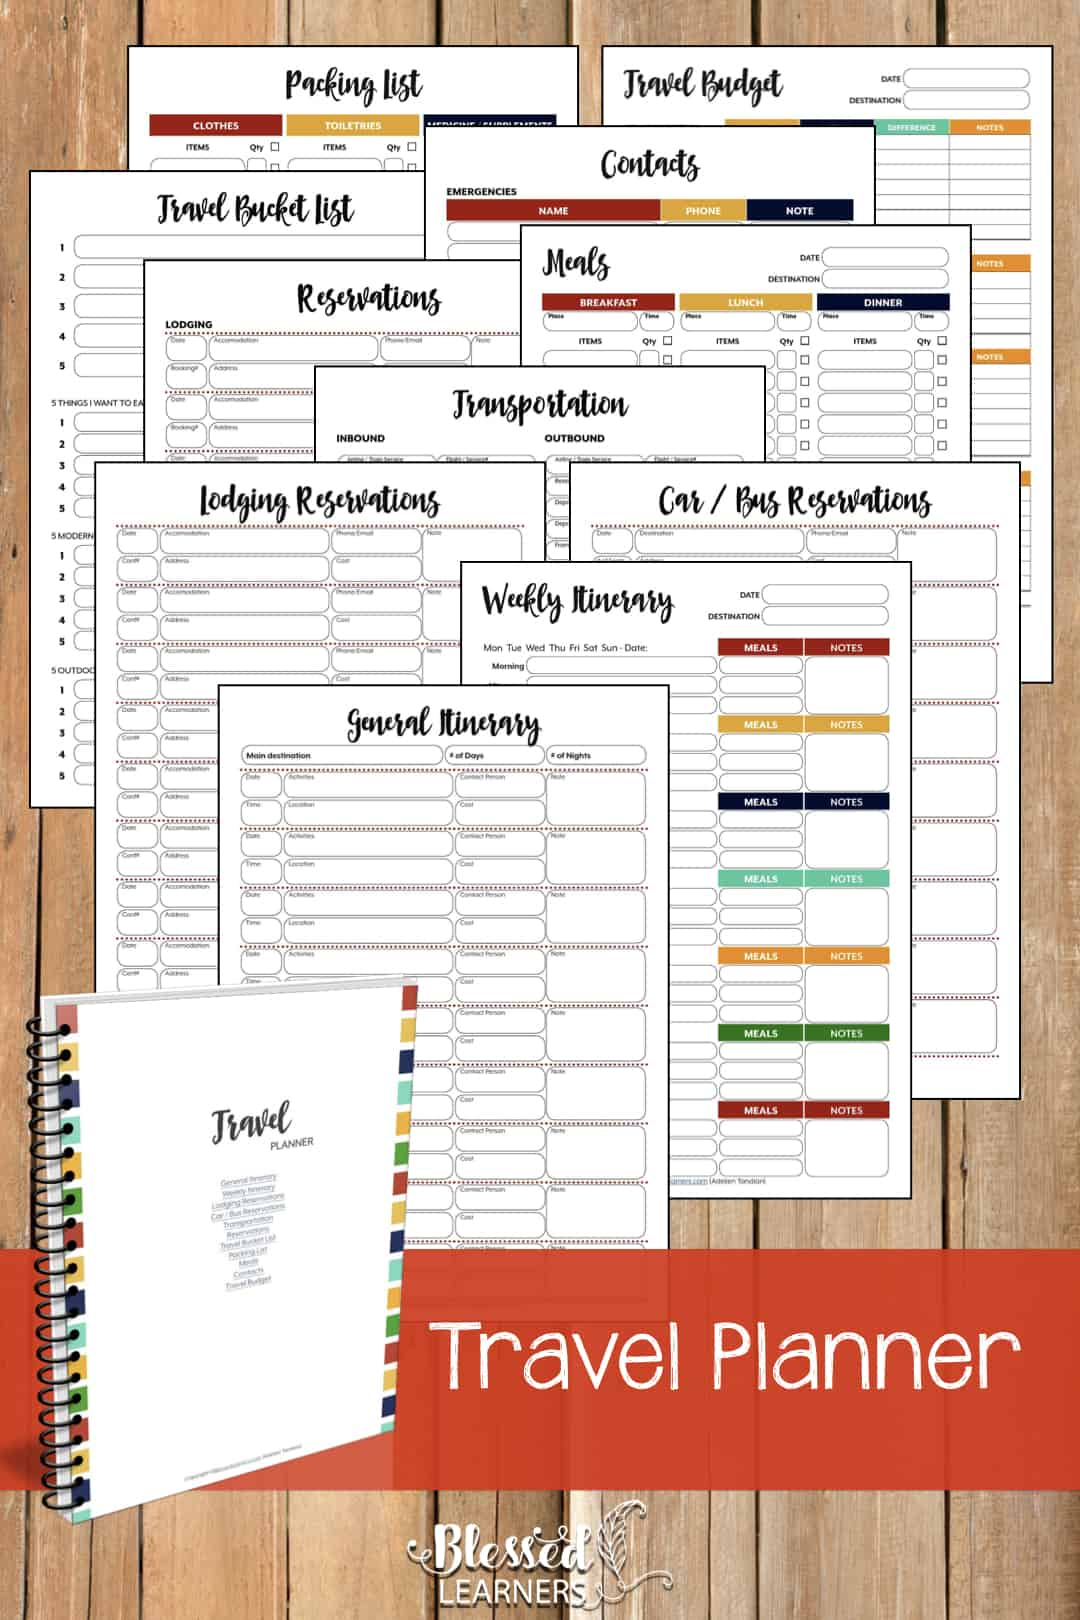 The Ultimate Life Planner Organizer for Moms is the perfect solution to getting most aspects of your home-and-work life well organized. A total of 230+ printable pages you can customize to use are included in the digital file. | Travel Planner | #Planner #Printable #TimeManagement #Organizer